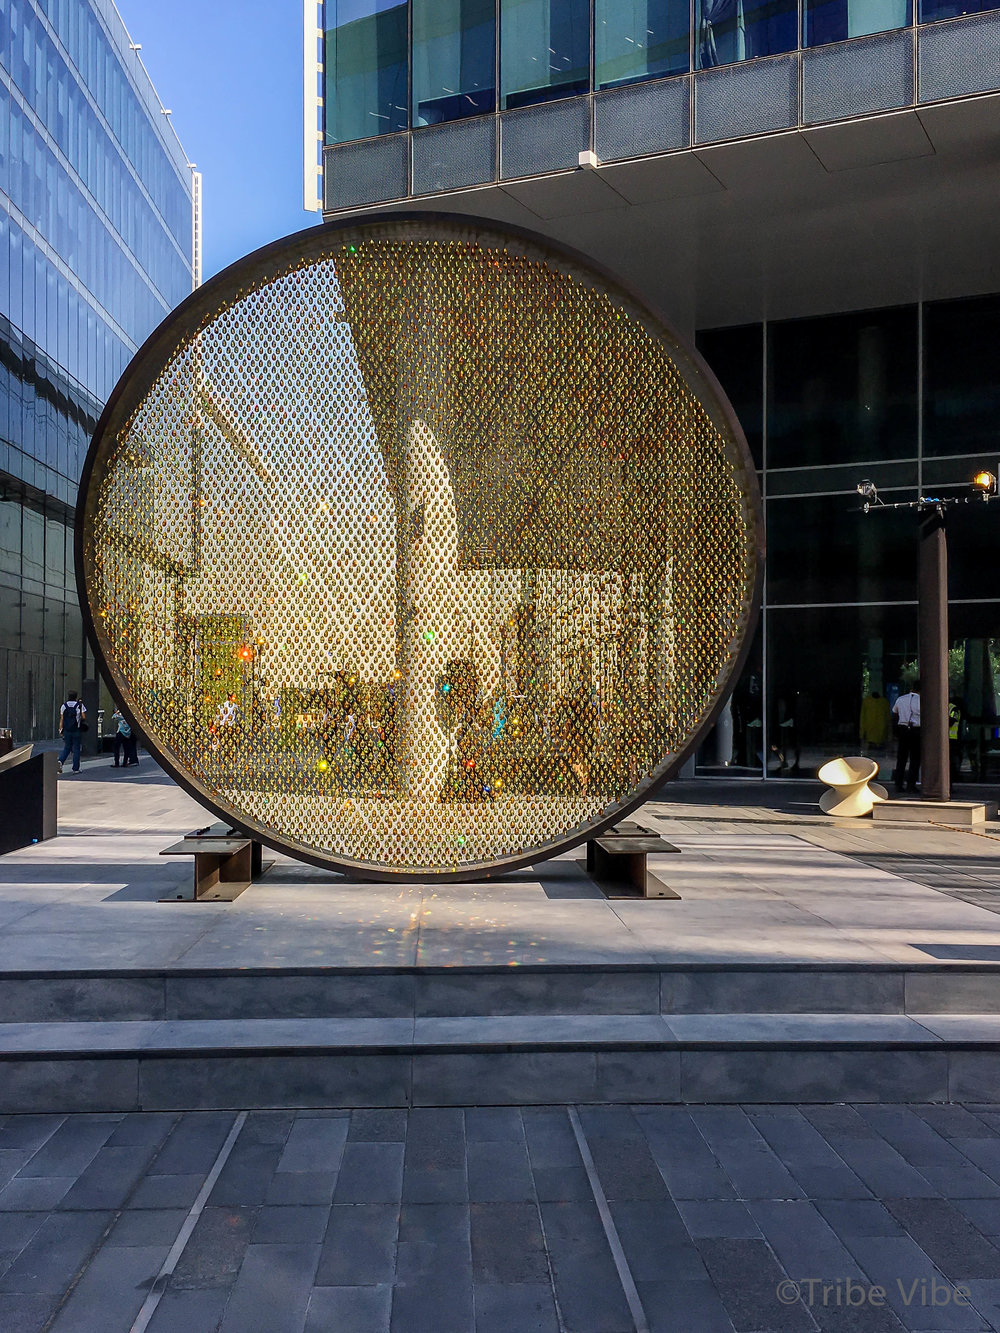 Dubai sun made from Swarovski crystals